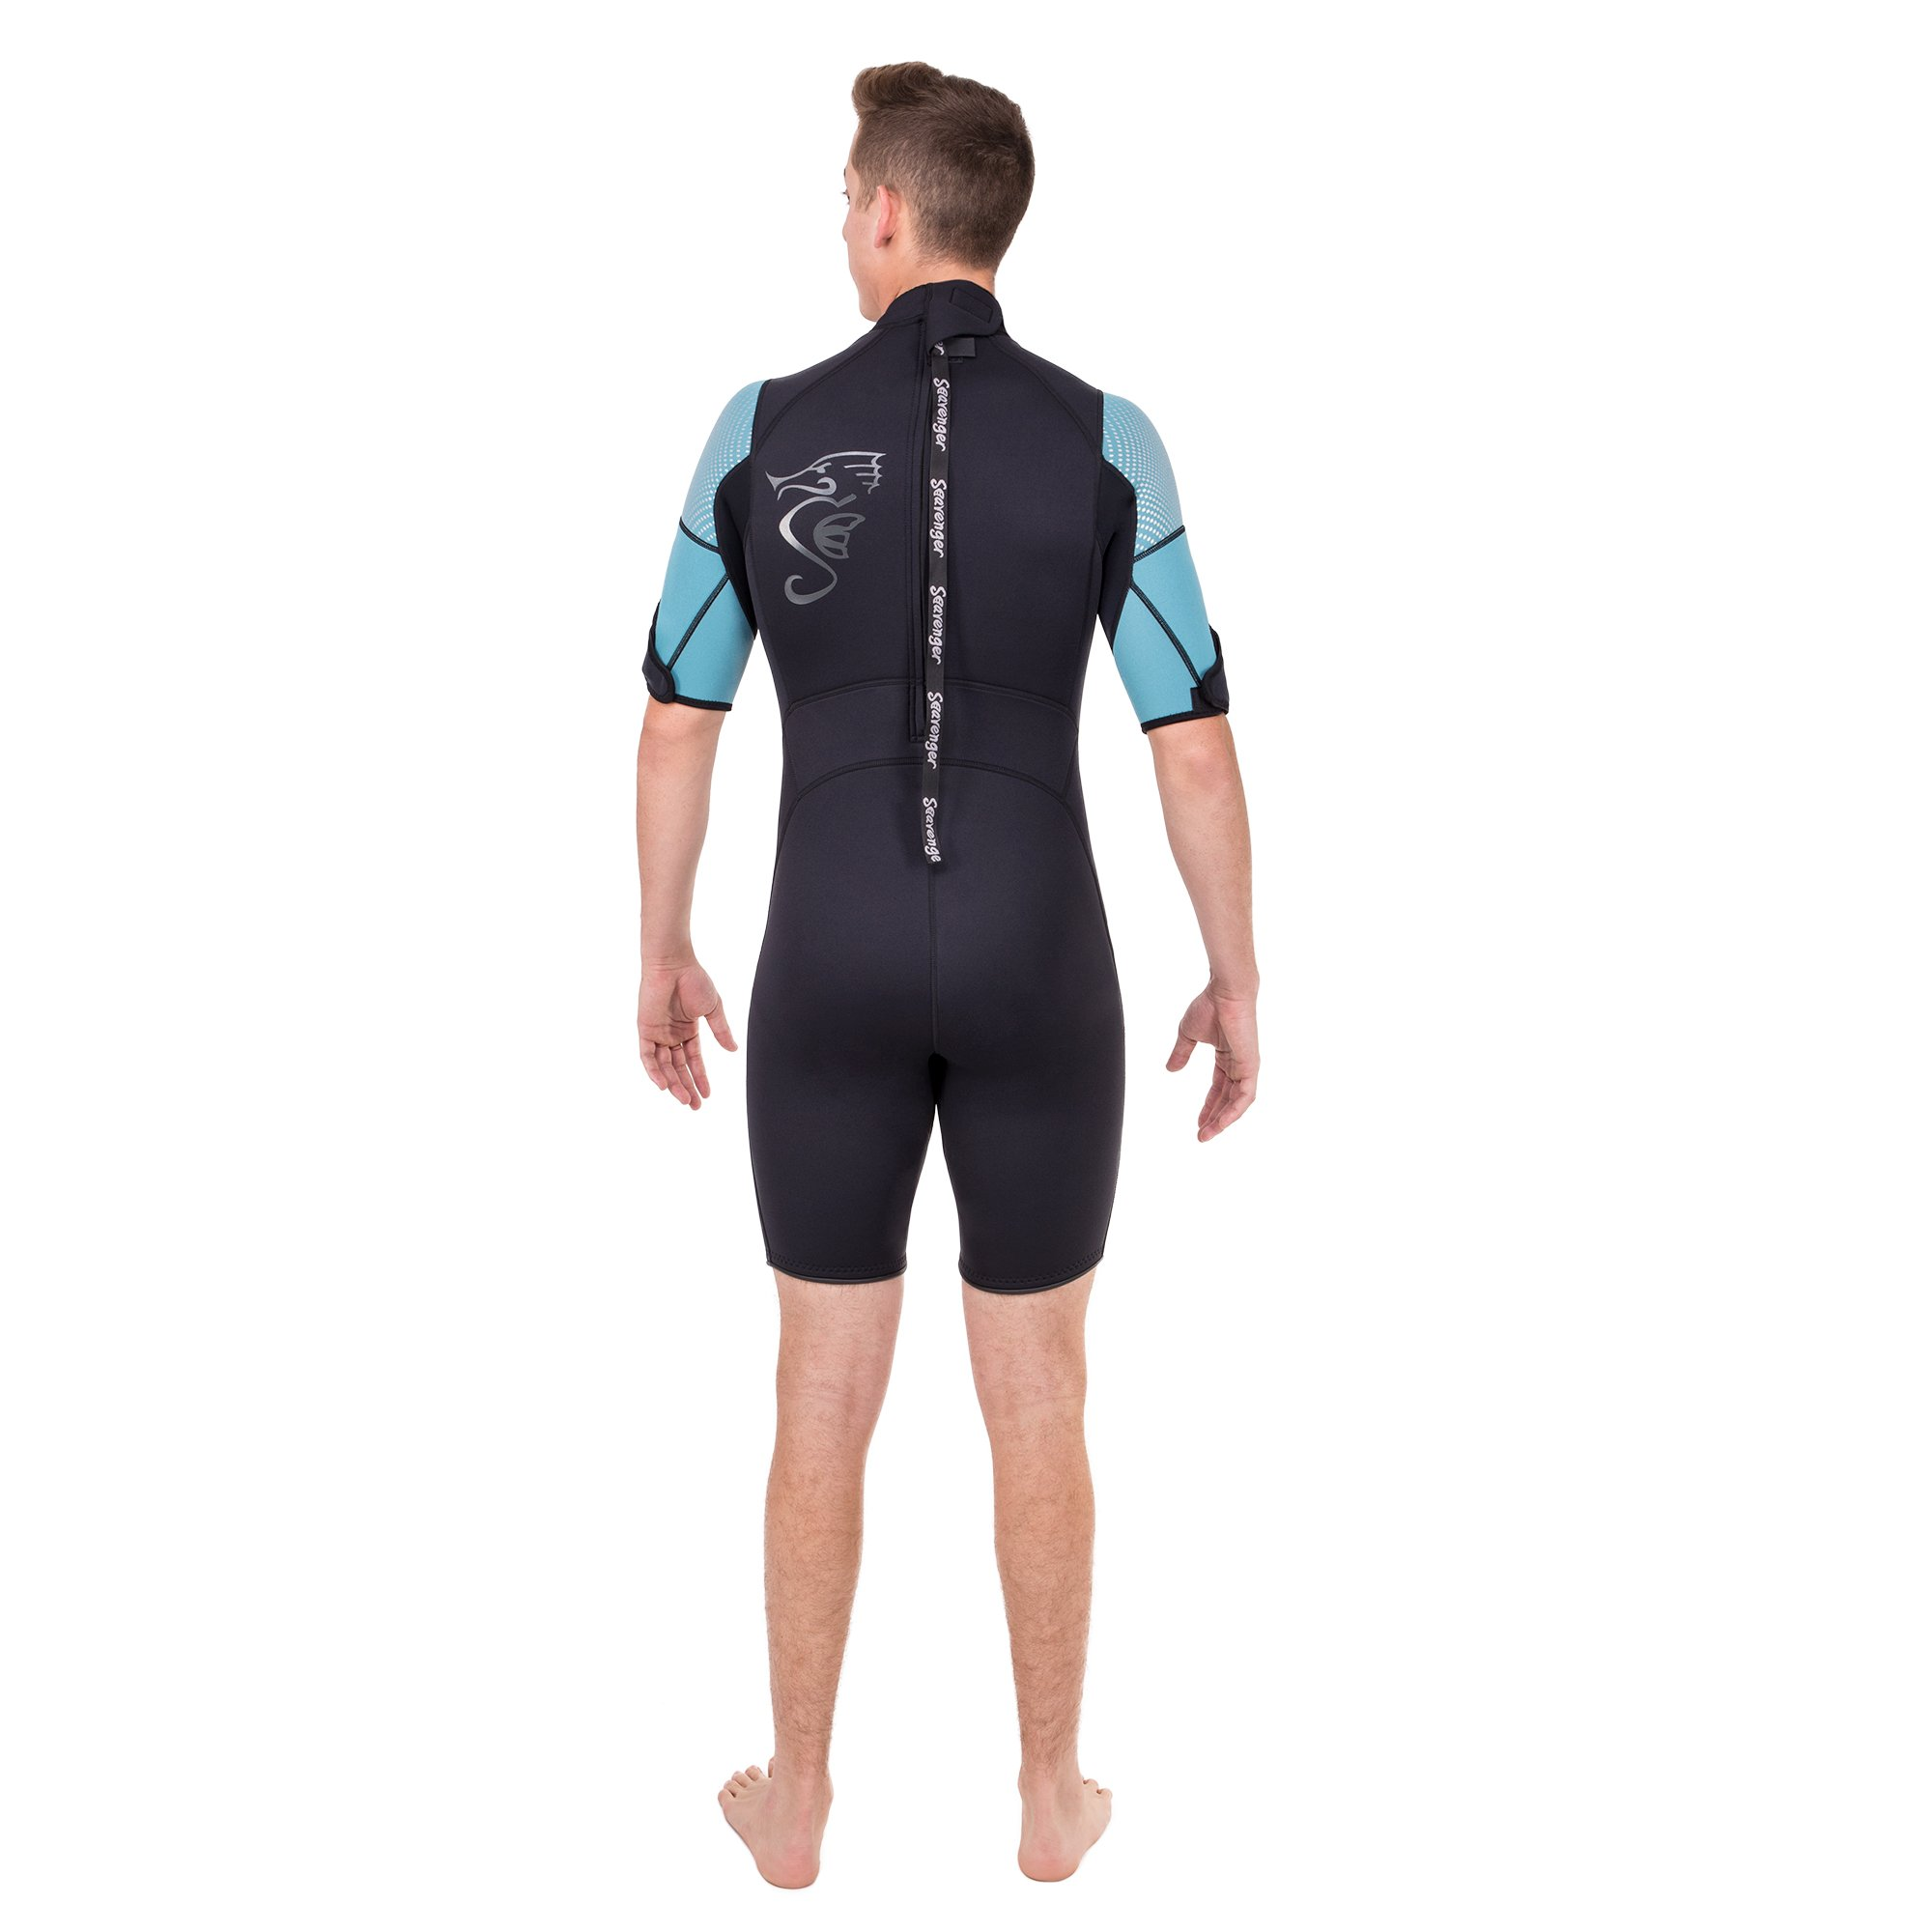 Seavenger Navigator 3mm Shorty | Short Sleeve Wetsuit for Men and Women | Surfing, Snorkeling, Scuba Diving (Surfing Aqua, Men's Small) by Seavenger (Image #3)